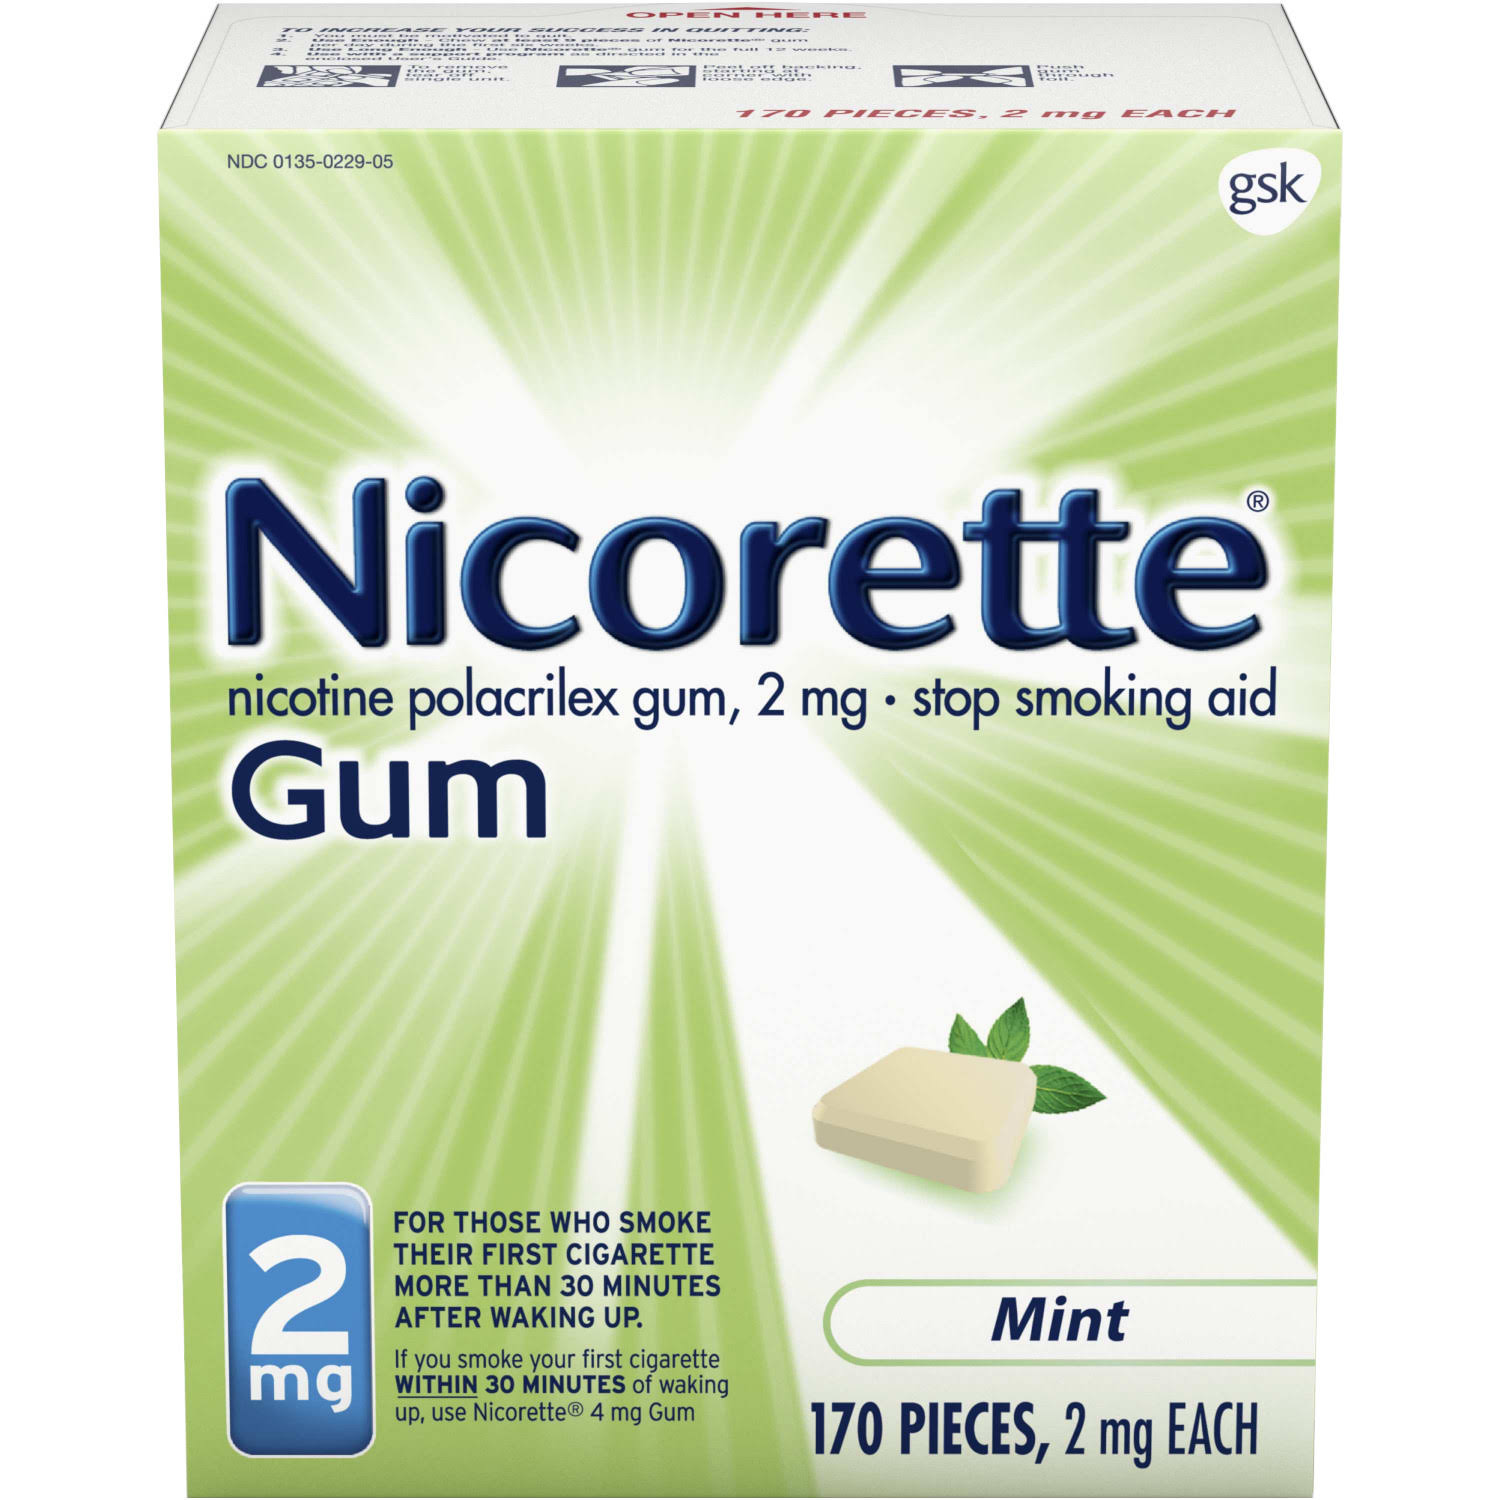 Gsk Nicorette Mint Gum - 2mg, 170ct